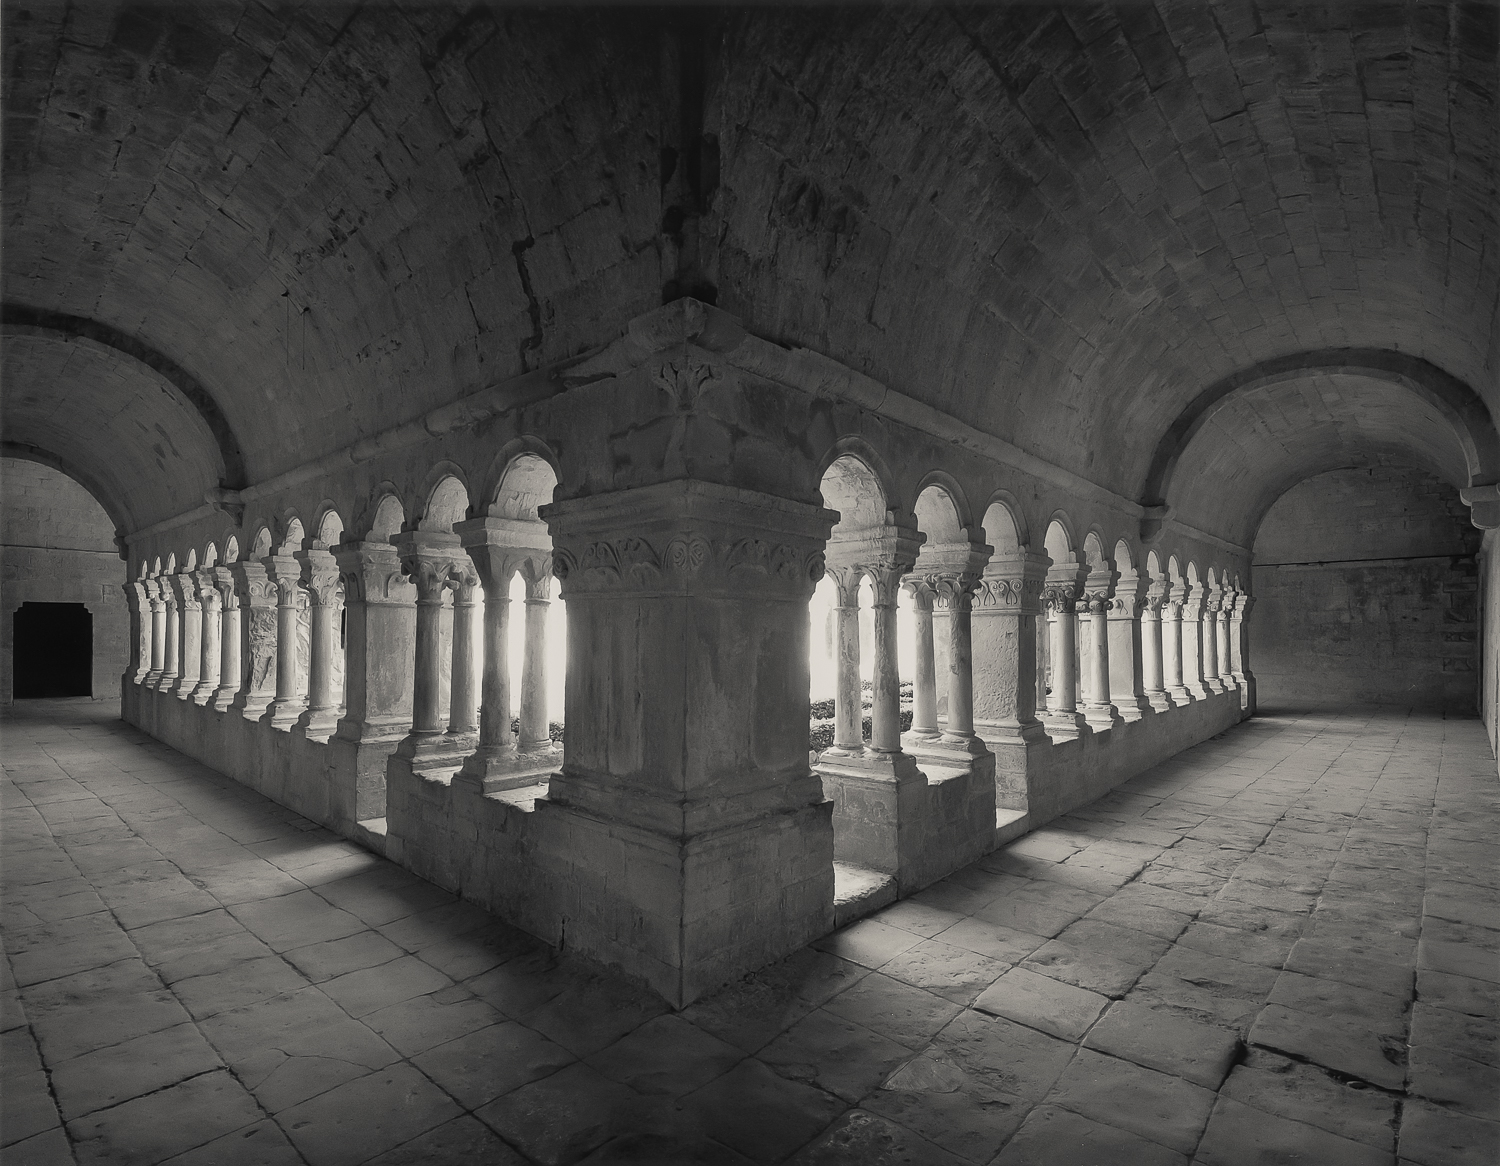 Galleries of the Cloister, Sénanque, 1995